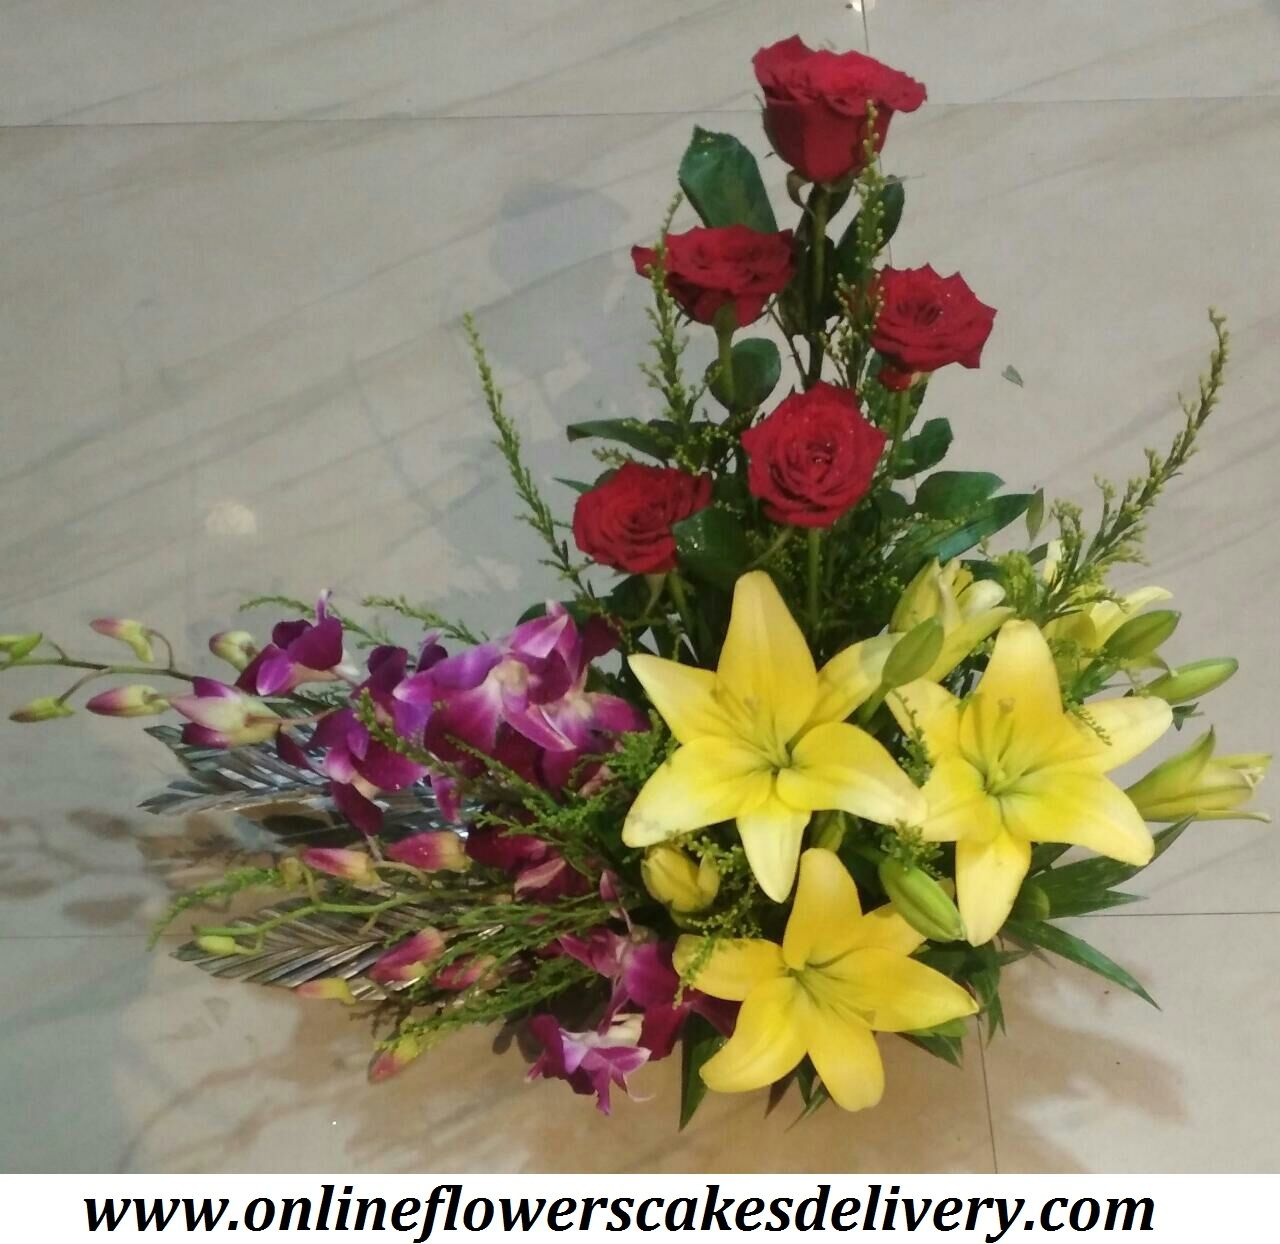 Send Flower To Durg India Online Flowers Online Chocolates Online Delivery Florist Offering Flower Cak Flowers Online Flower Arrangements Online Chocolate